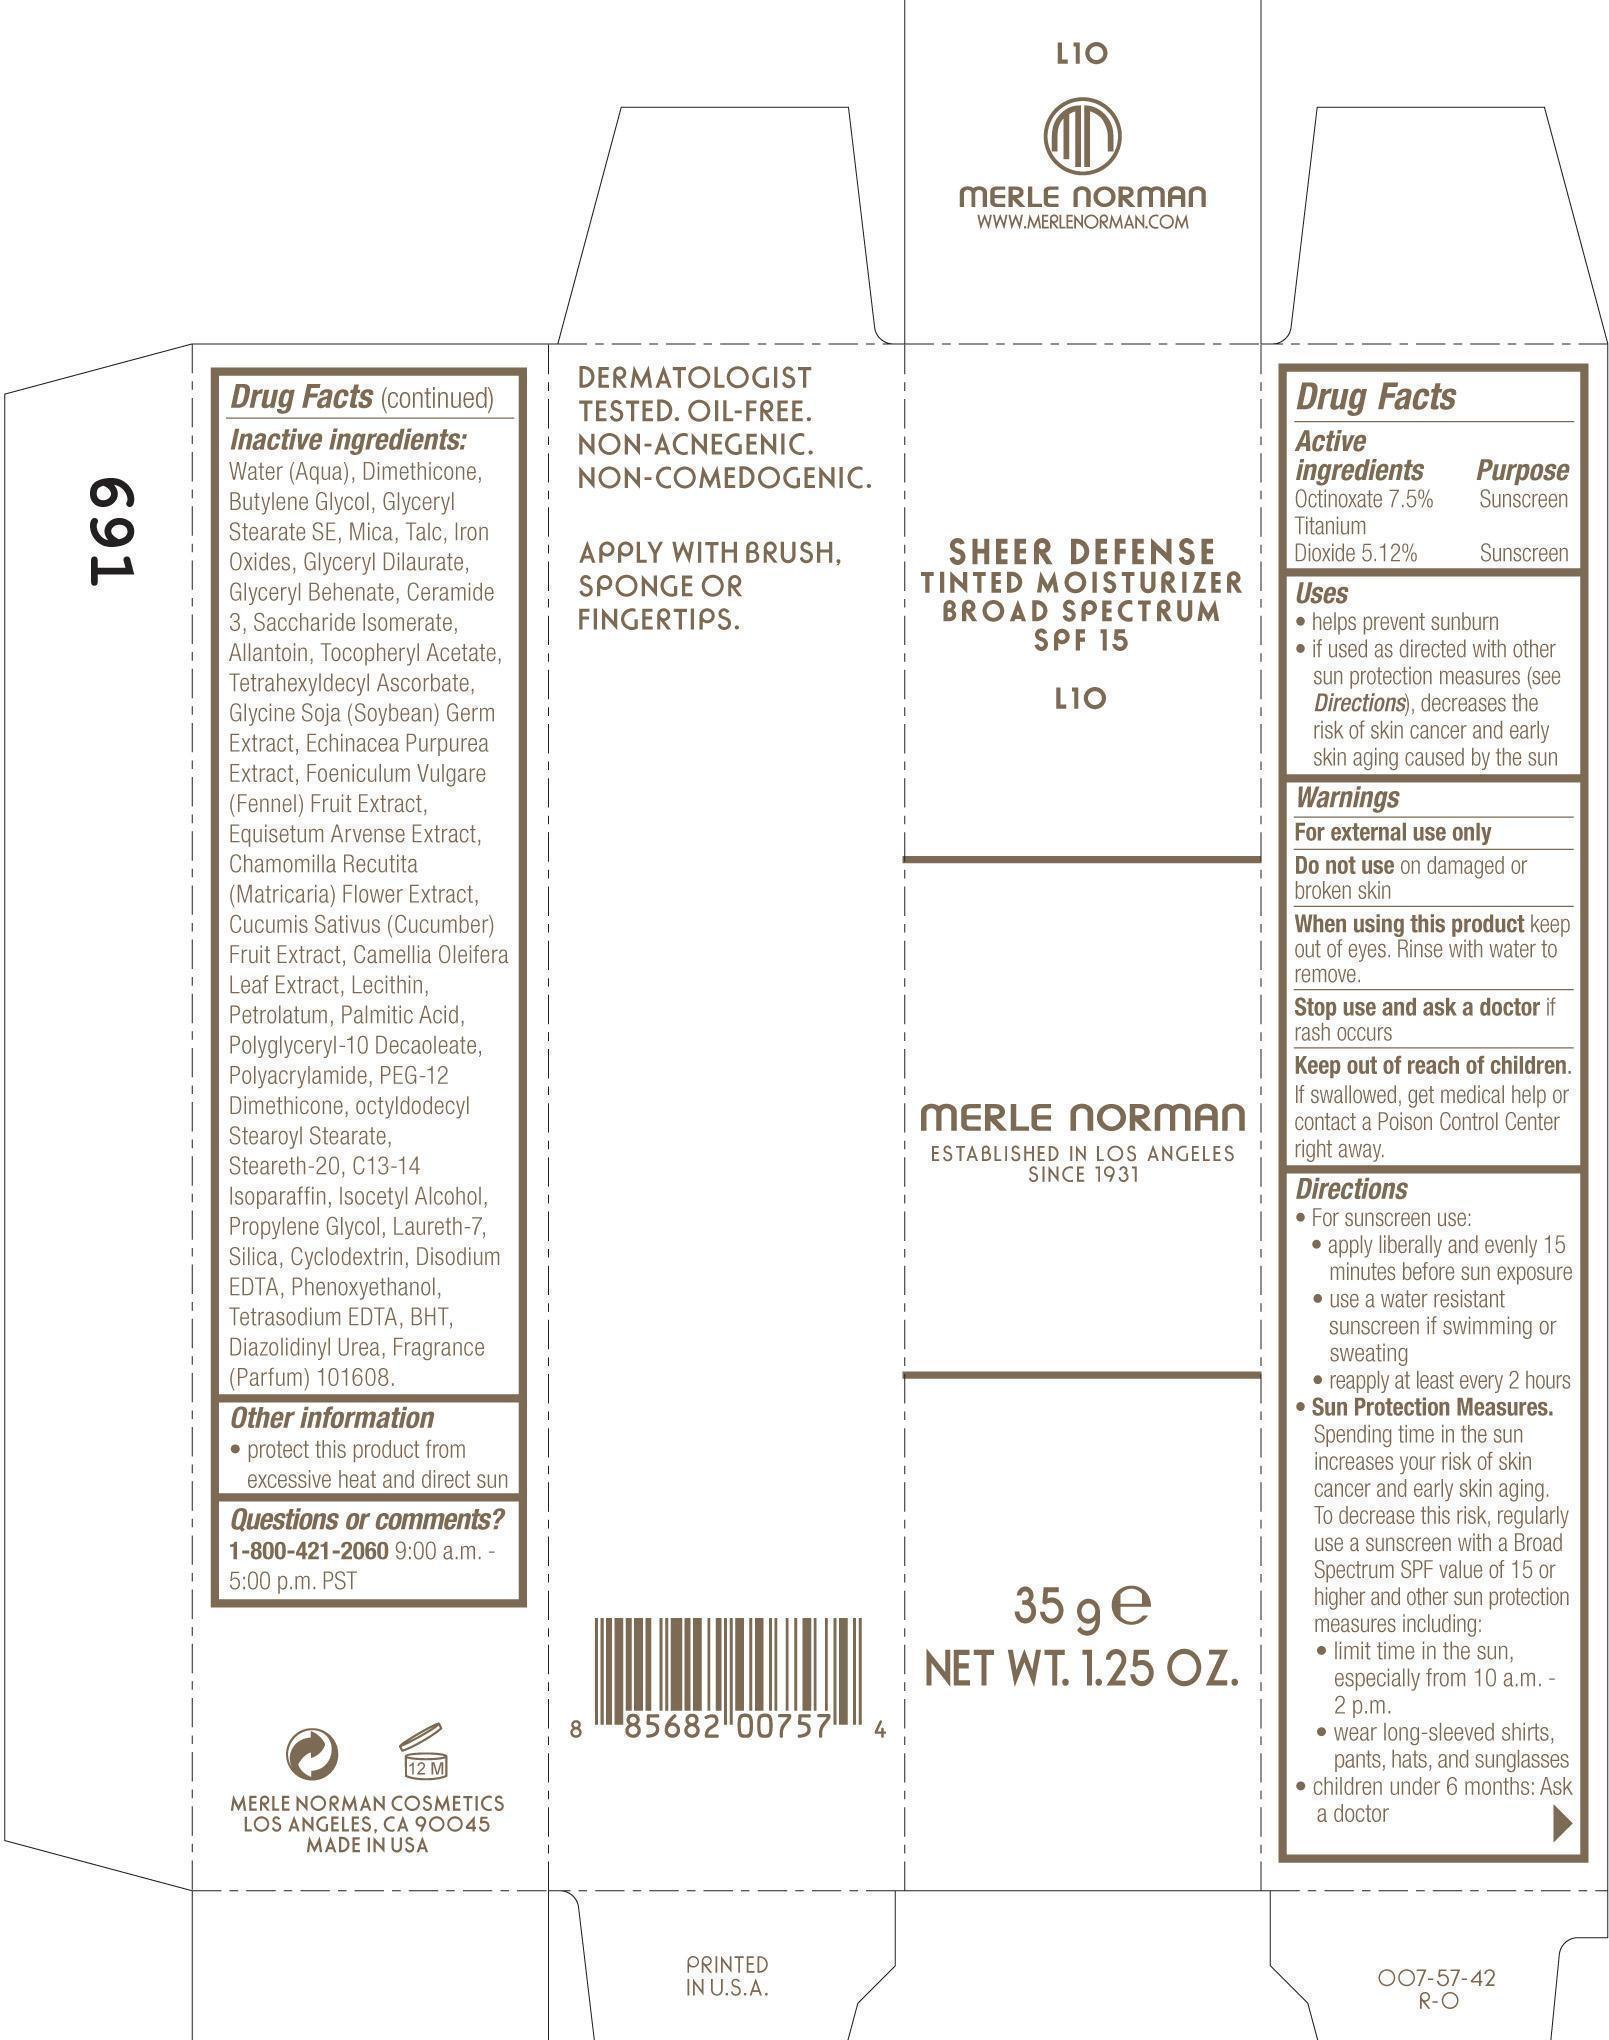 Advil Allergy And Congestion Relief (Chlorpheniramine Maleate, Ibuprofen, And Phenylephrine Hydrochloride) Tablet, Coated [Pfizer Consumer Healthcare]